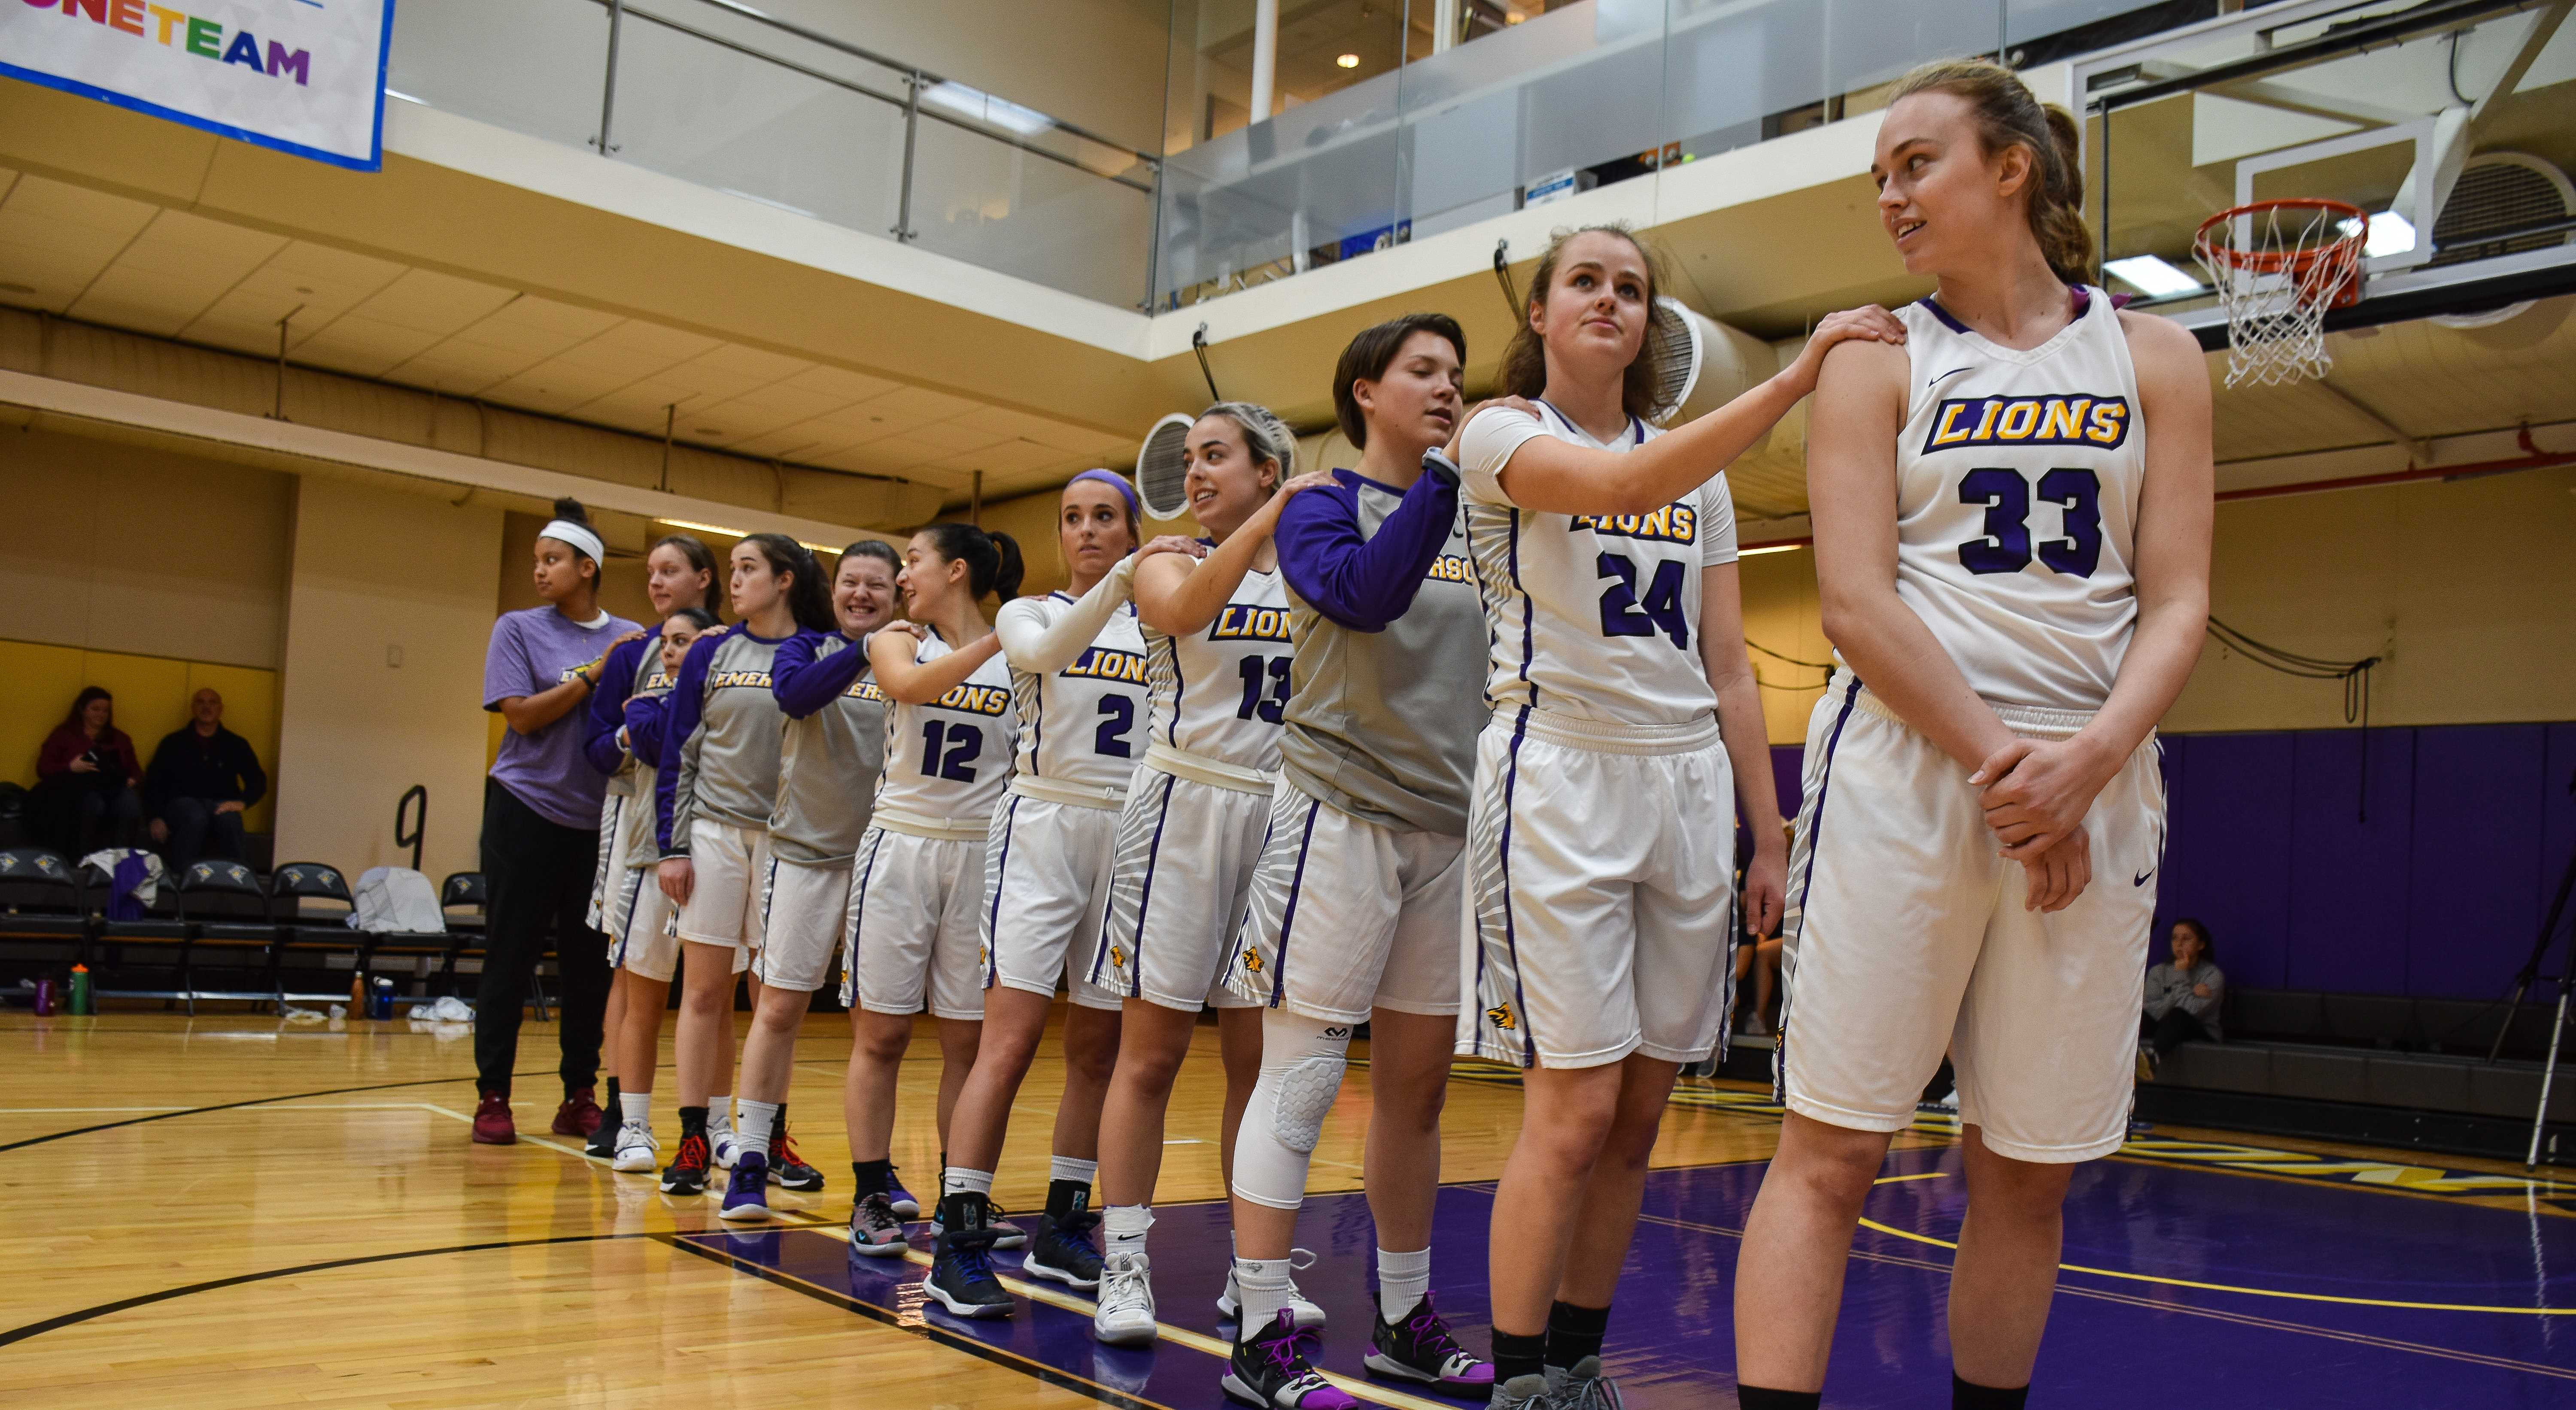 The women's basketball team opened the season with a 71-42 win over Gordon and a 68-62 loss to Suffolk. Photo by Anissa Gardizy / Beacon Staff